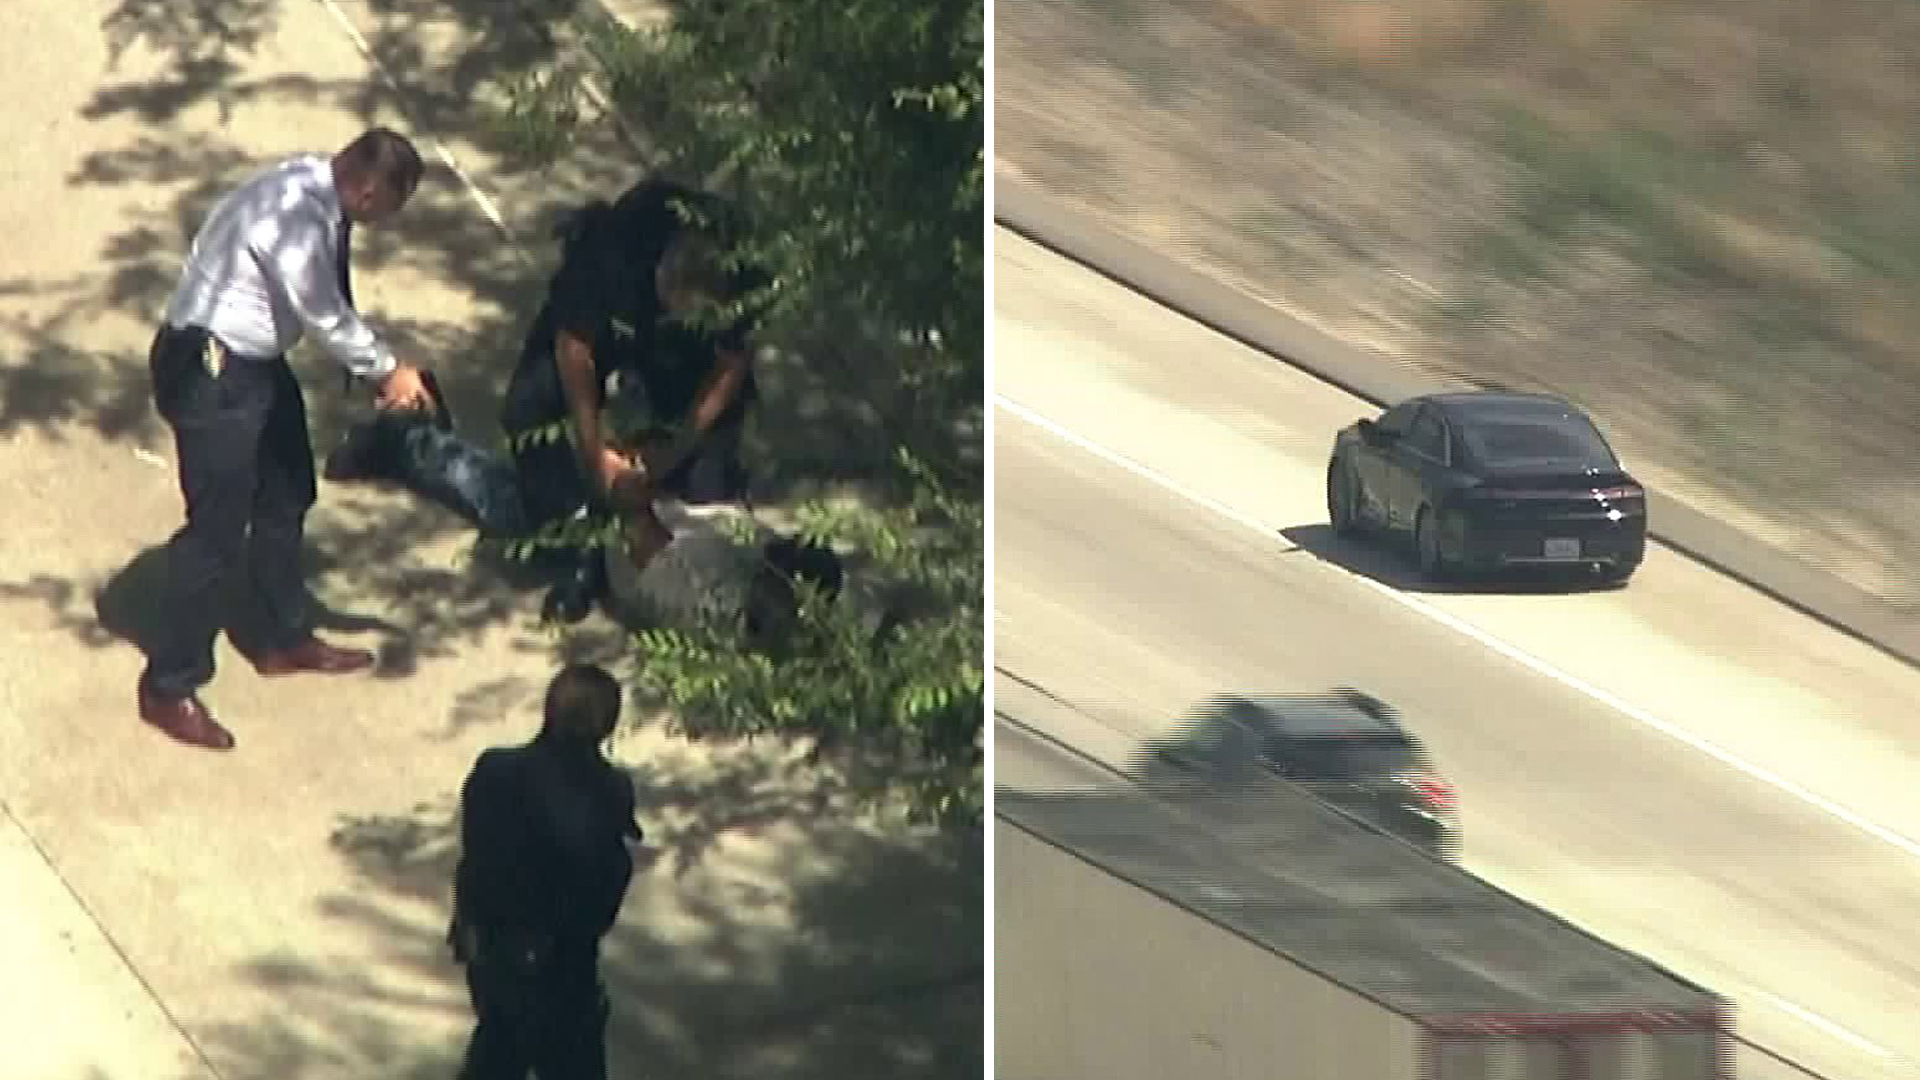 Authorities taken one person into custody after a pursuit in the Sherman Oaks area on July 19, 2019. (Credit: KTLA)